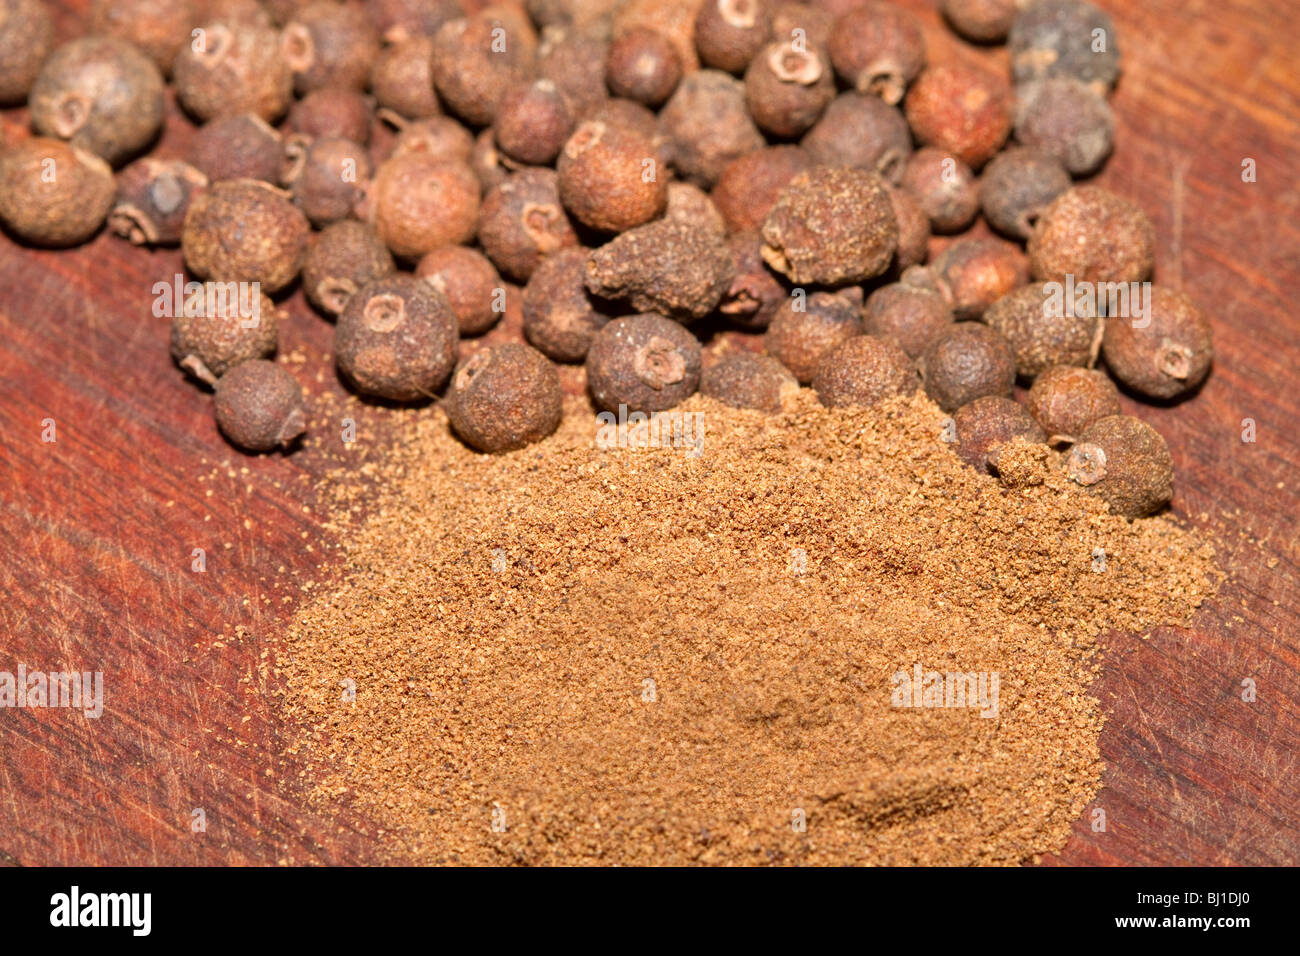 Allspice, whole dried berries and ground - Stock Image